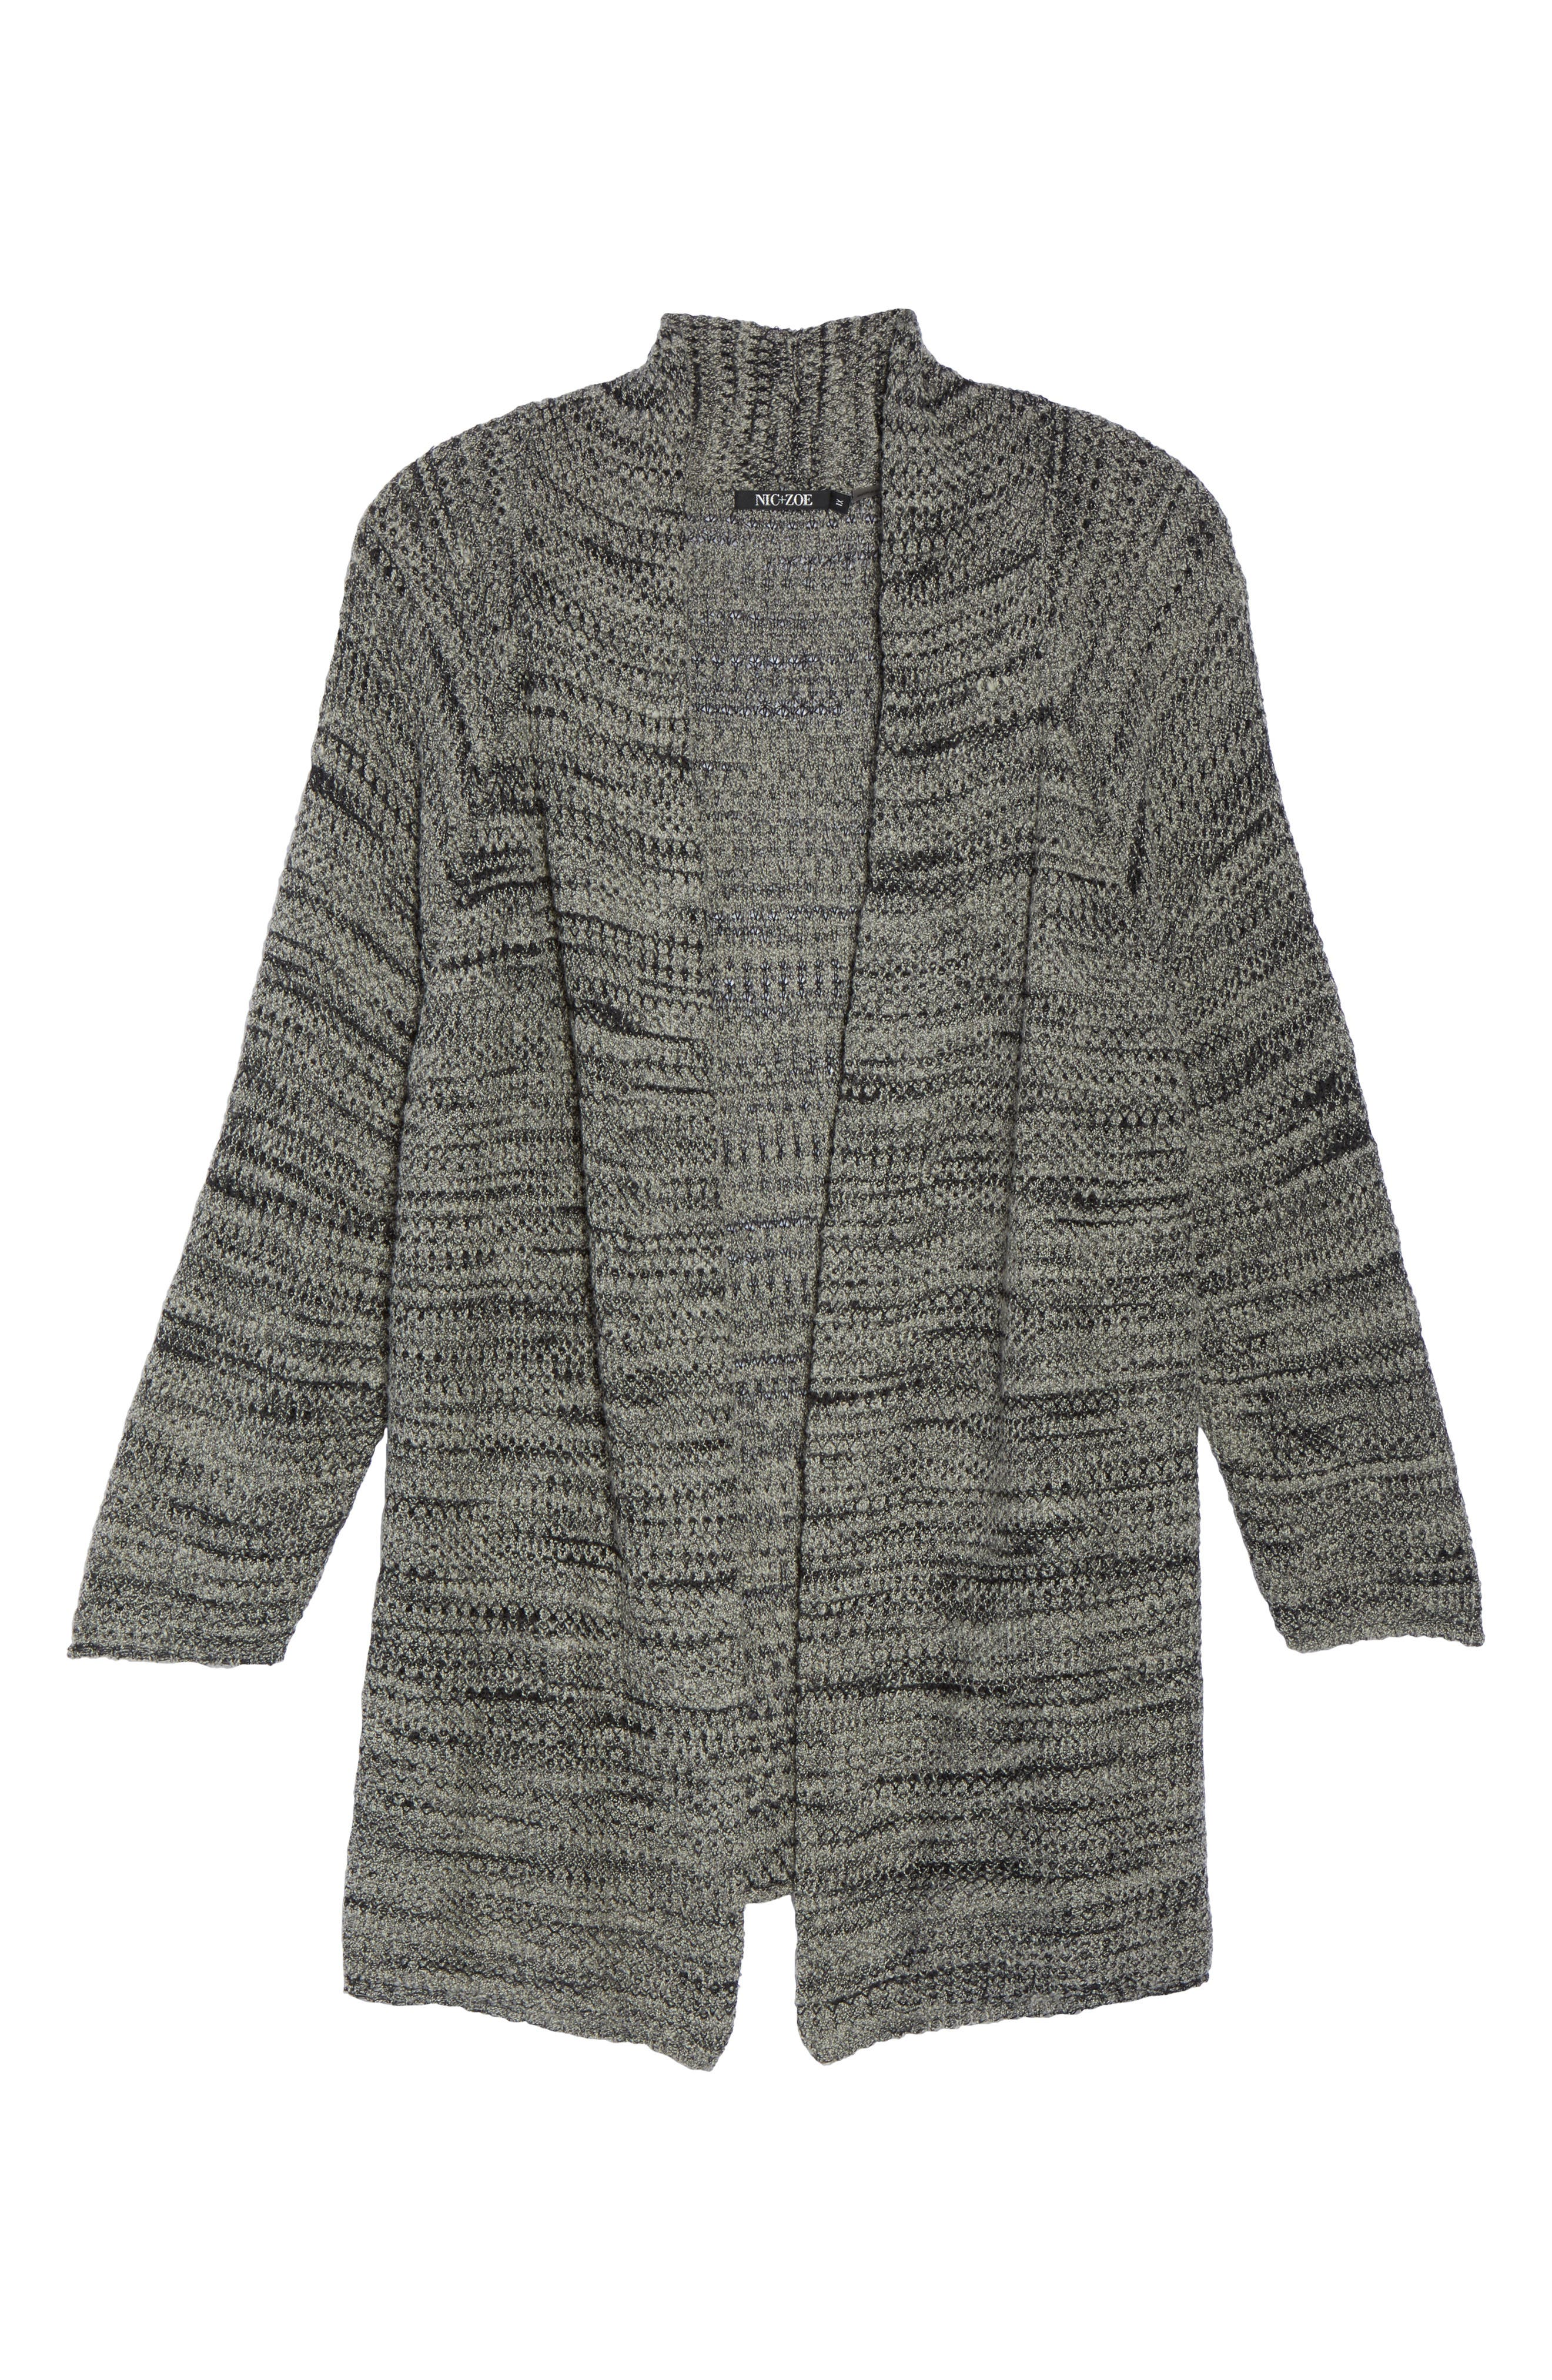 Thick & Thin Cardigan,                             Alternate thumbnail 6, color,                             Lichen